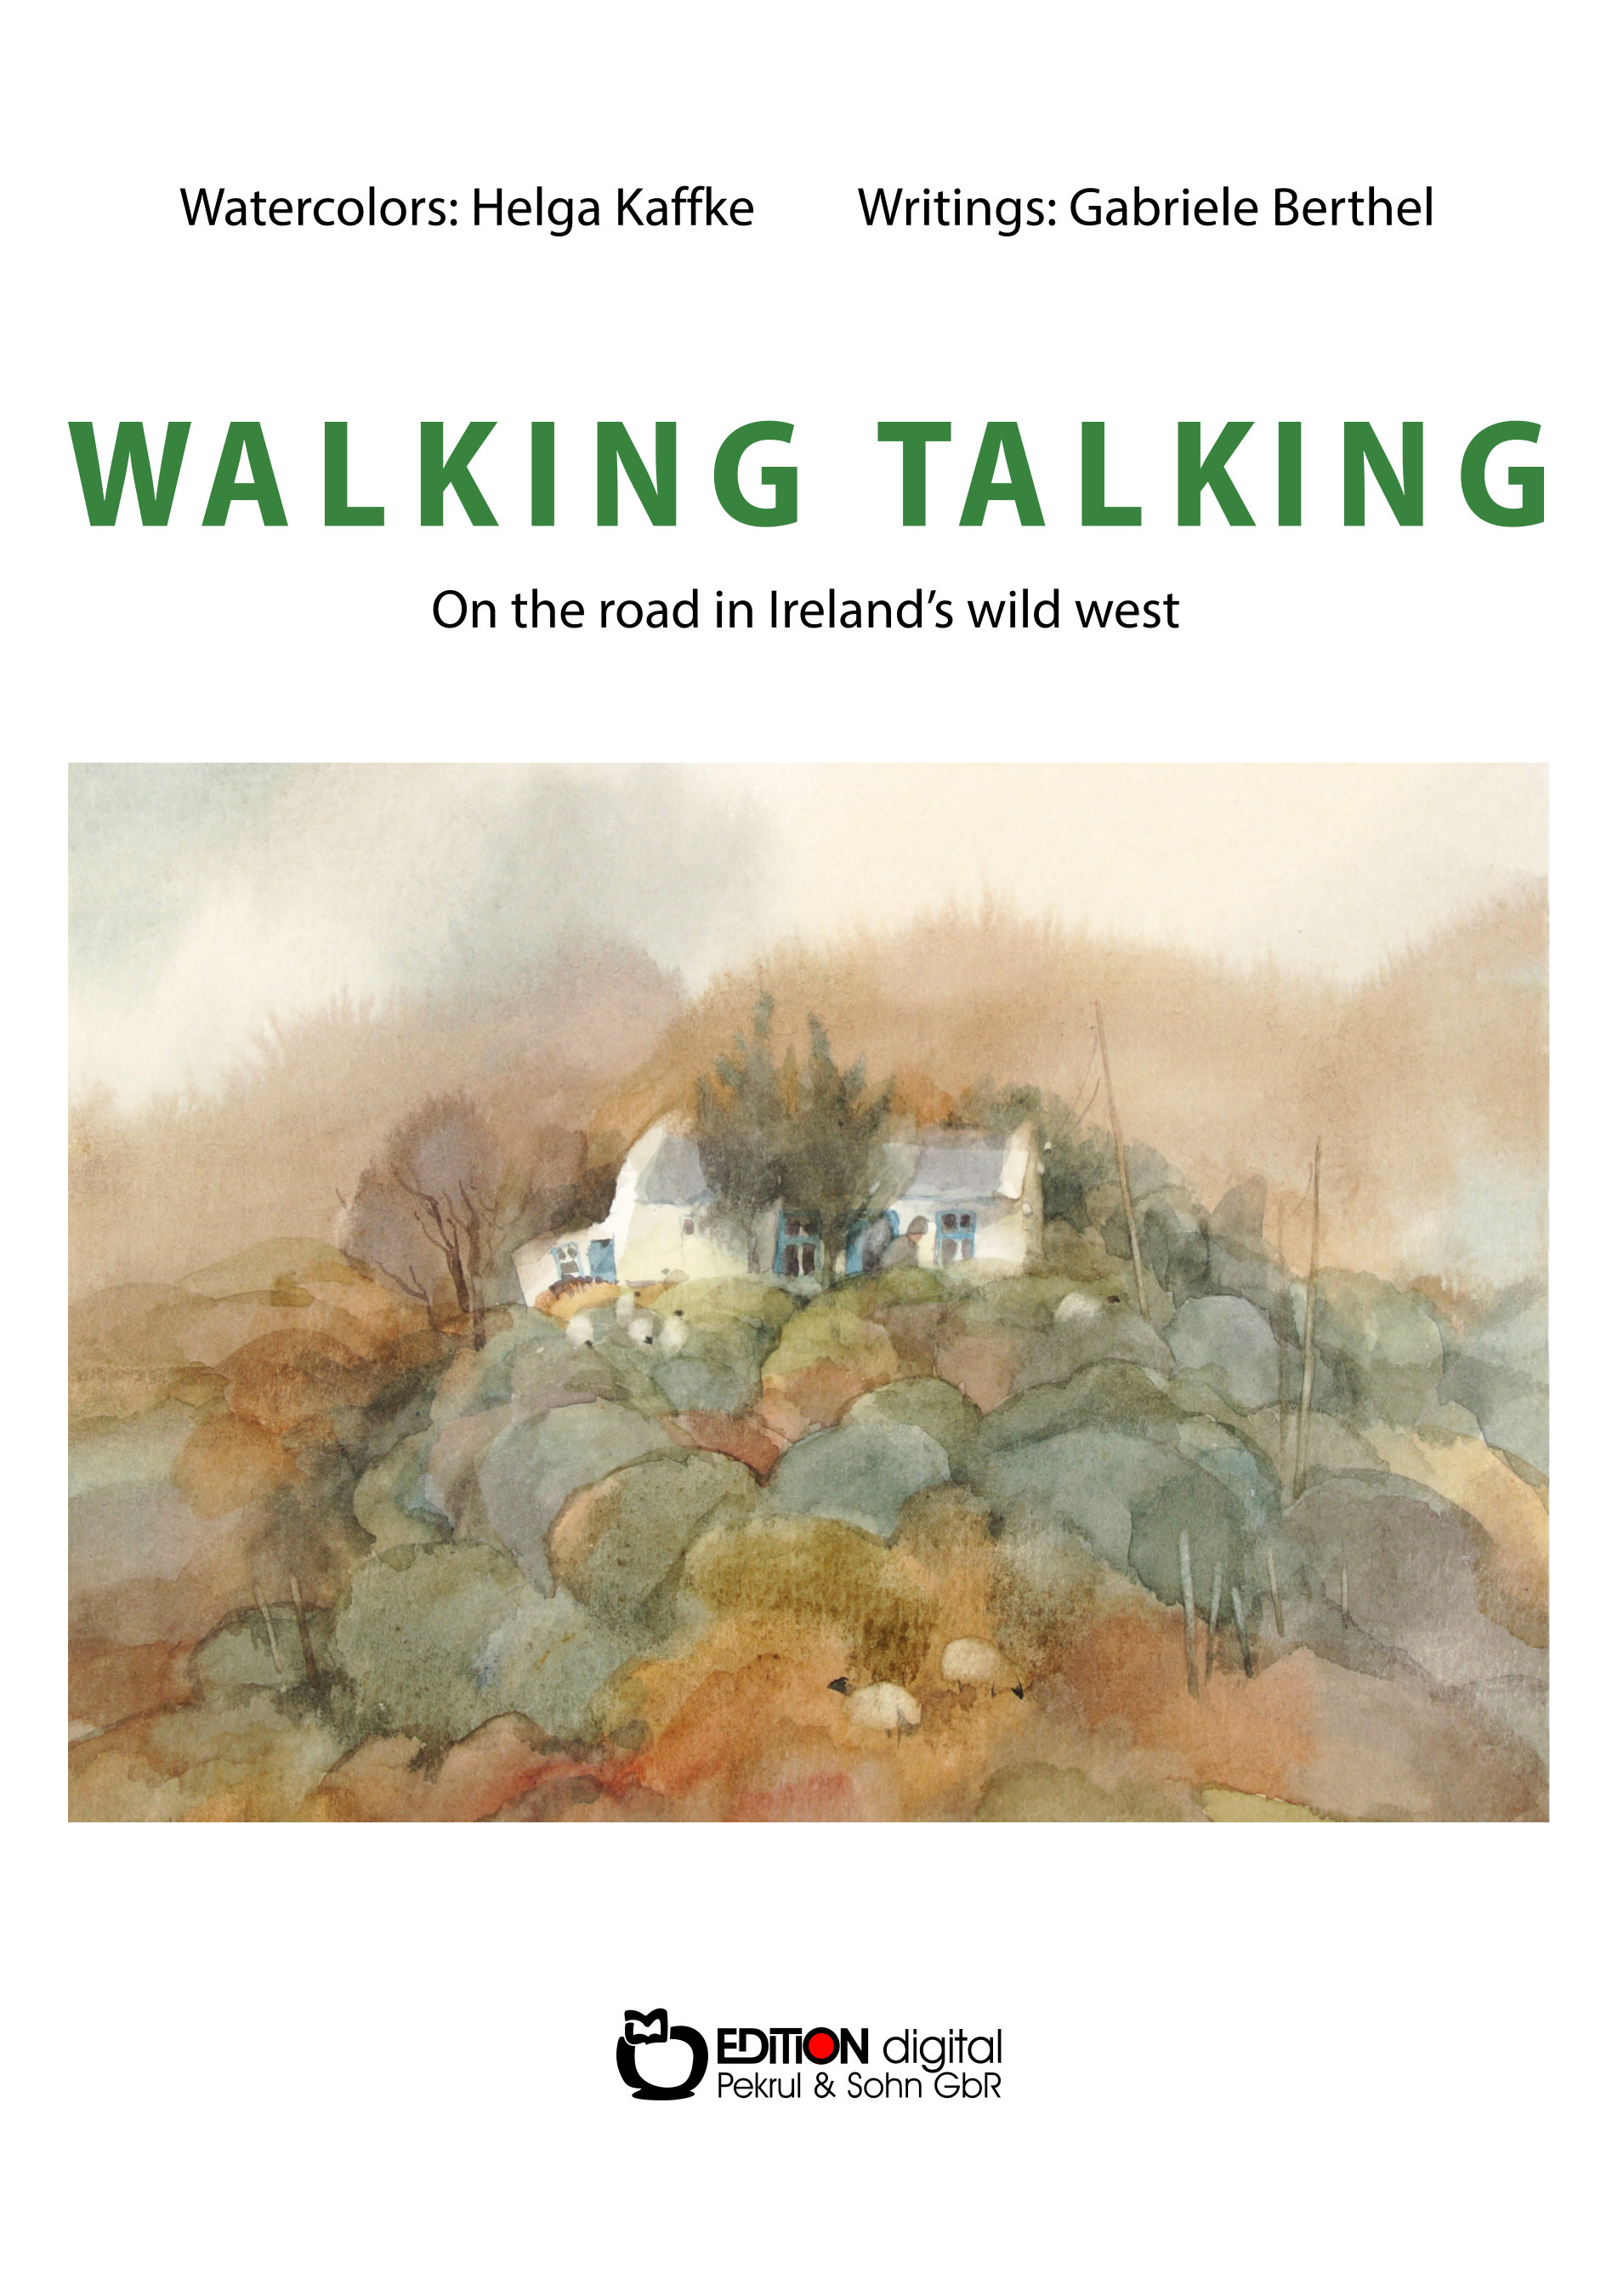 WALKING TALKING. On the road in Ireland's wild west von Gabriele Berthel, Helga Kaffke (Illustrator)